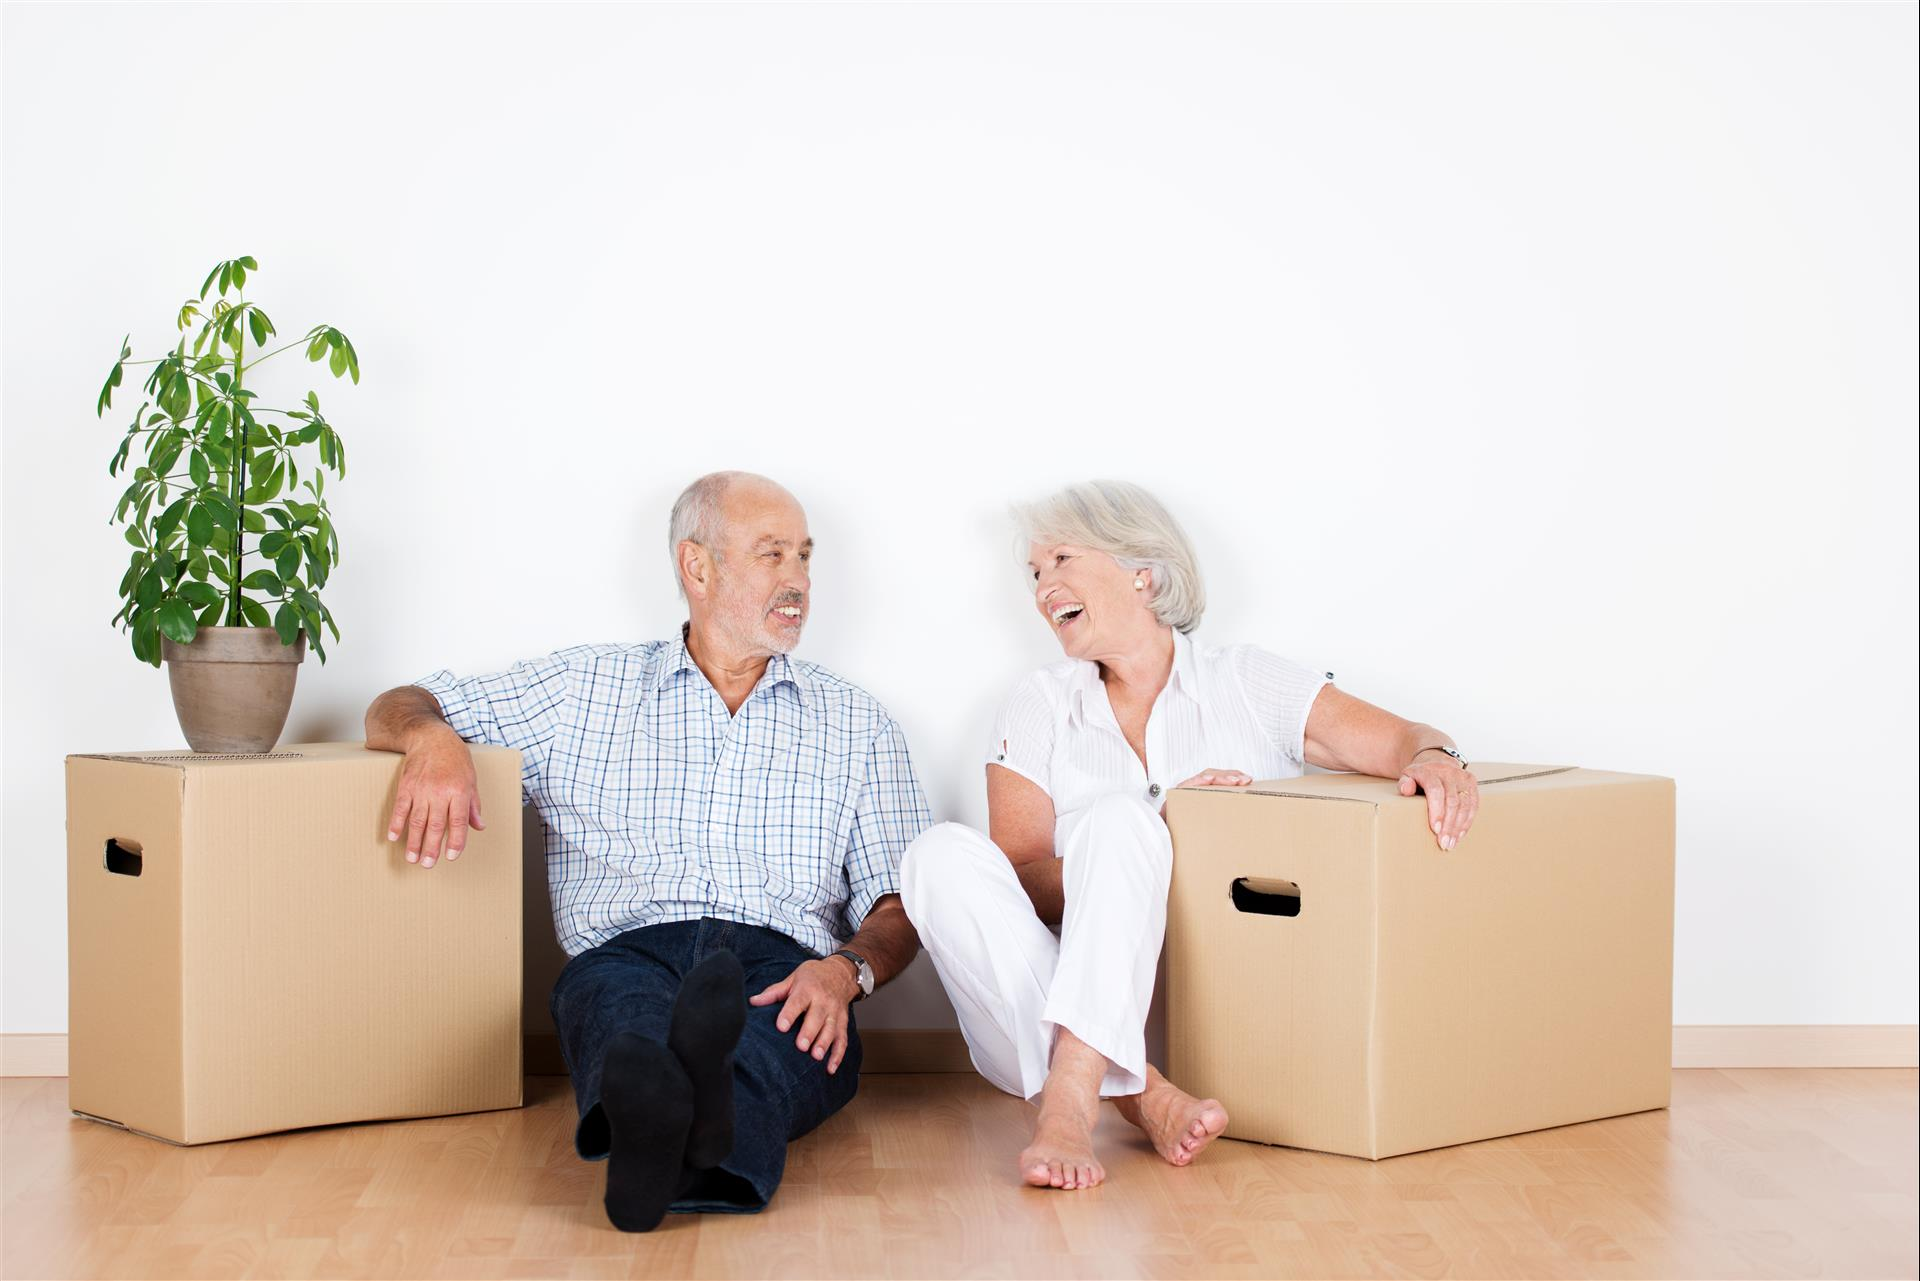 PACKING FOR YOUR ASSISTED LIVING COMMUNITY: HELPFUL DOS & DON'TS